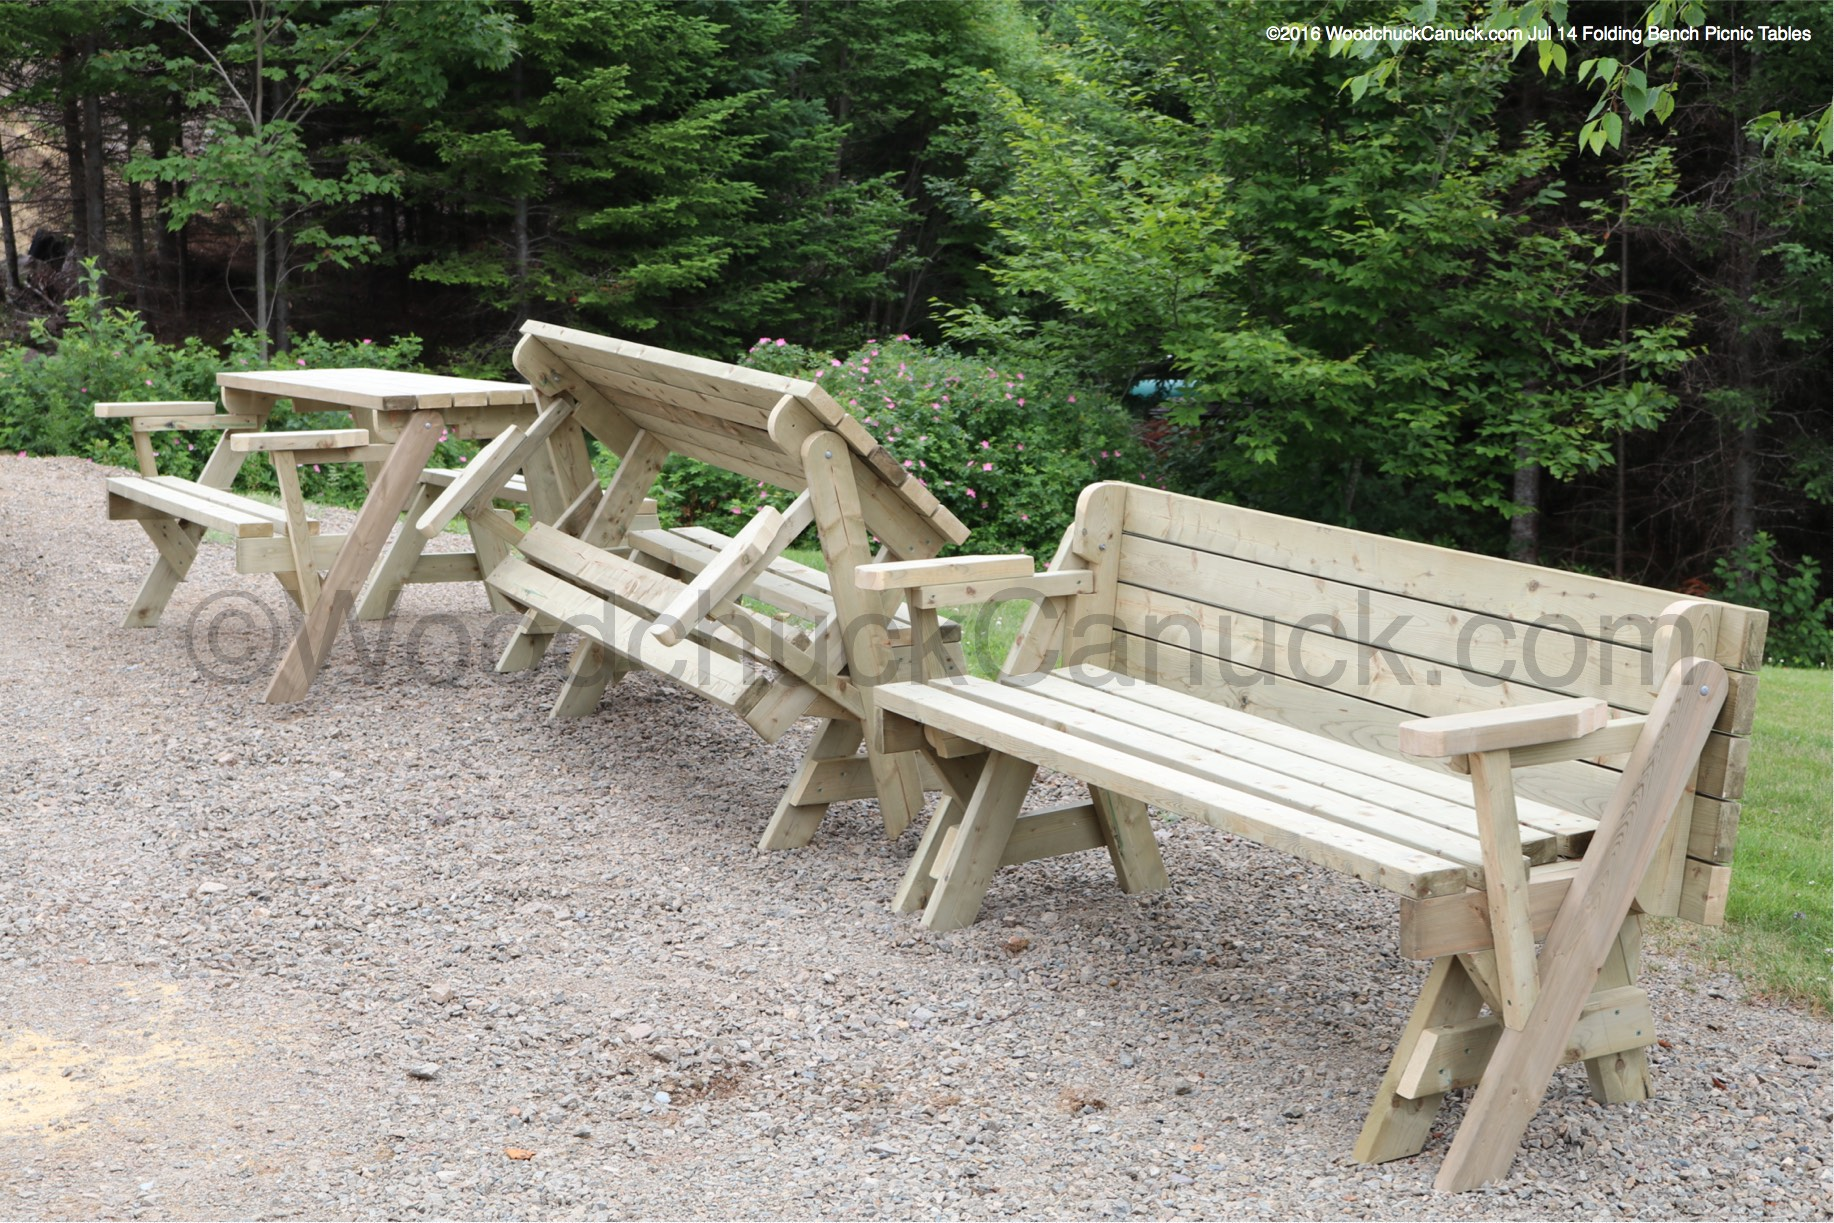 Bench Folds Into Picnic Table 28 Images Plans Bench That Folds Into A Picnic Table Emailed